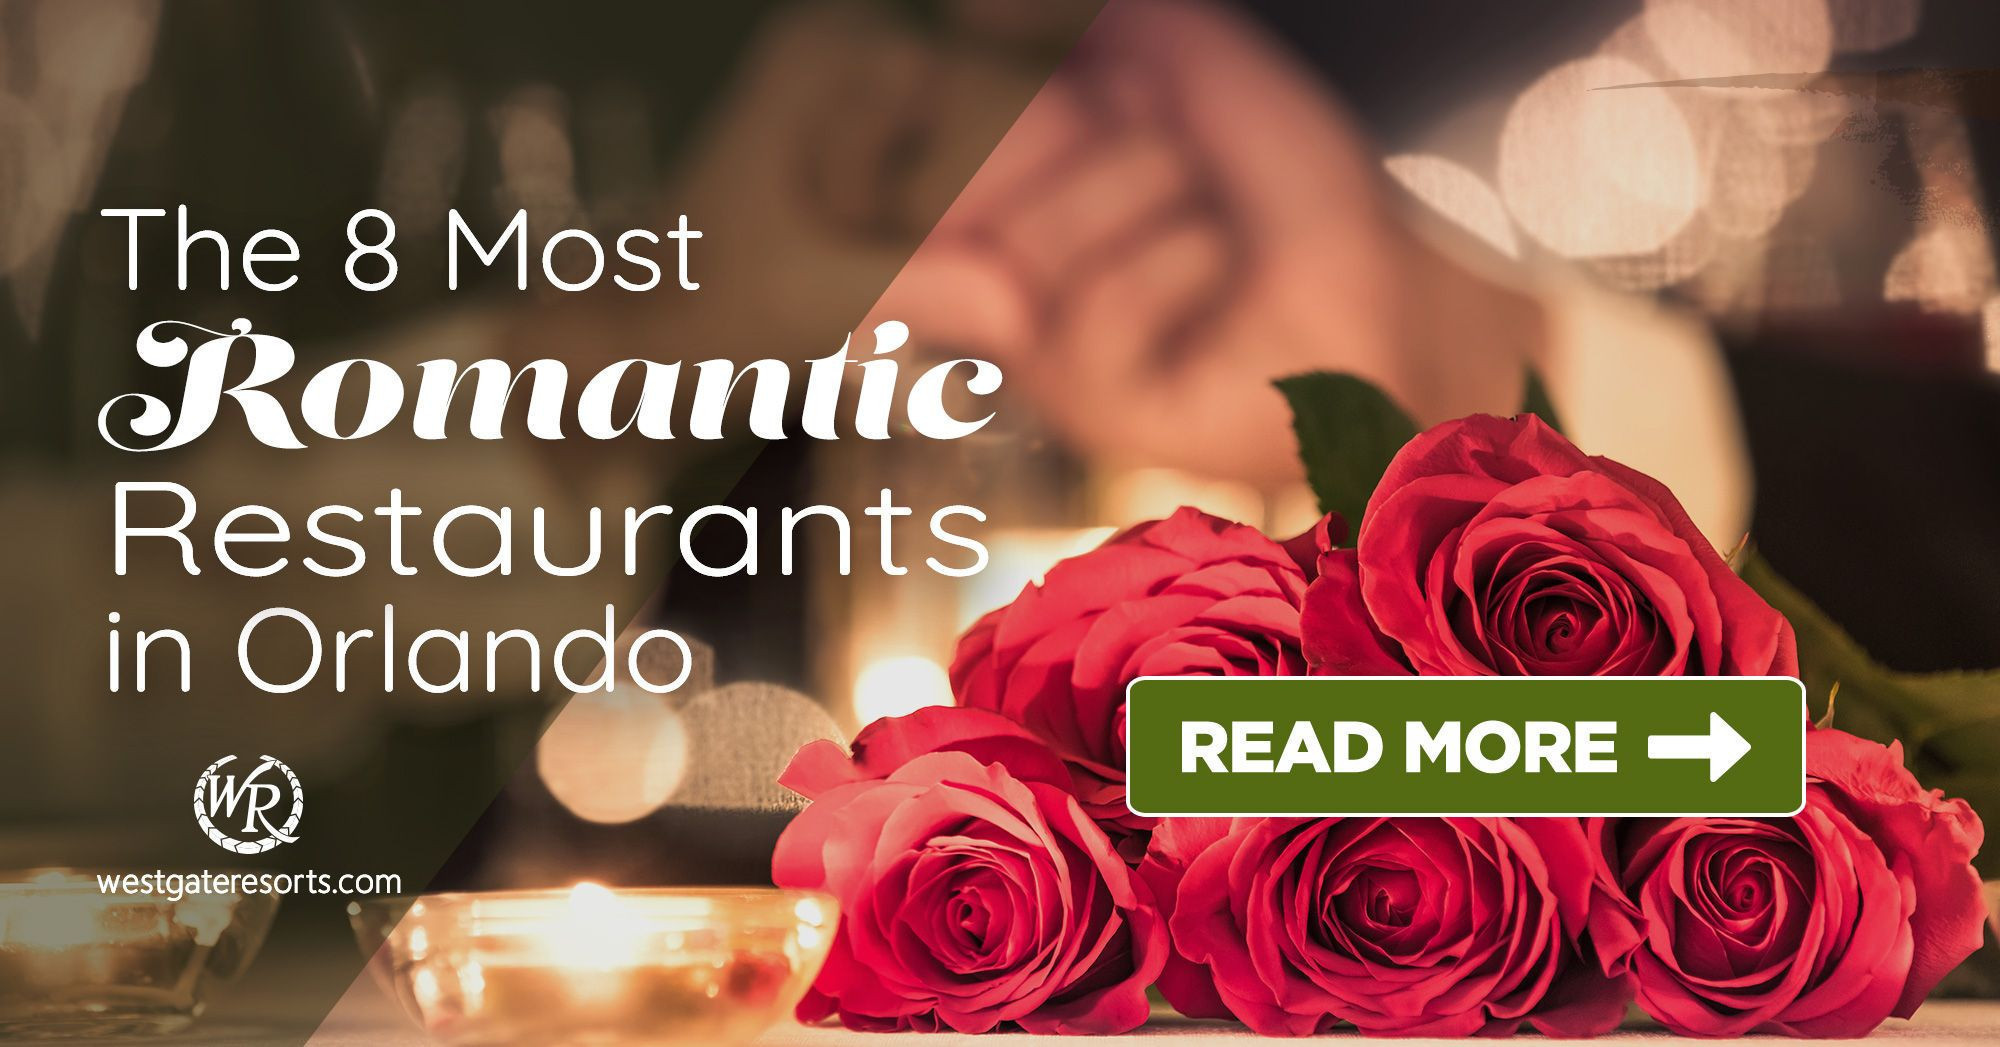 The 8 Most Romantic Restaurants in Orlando